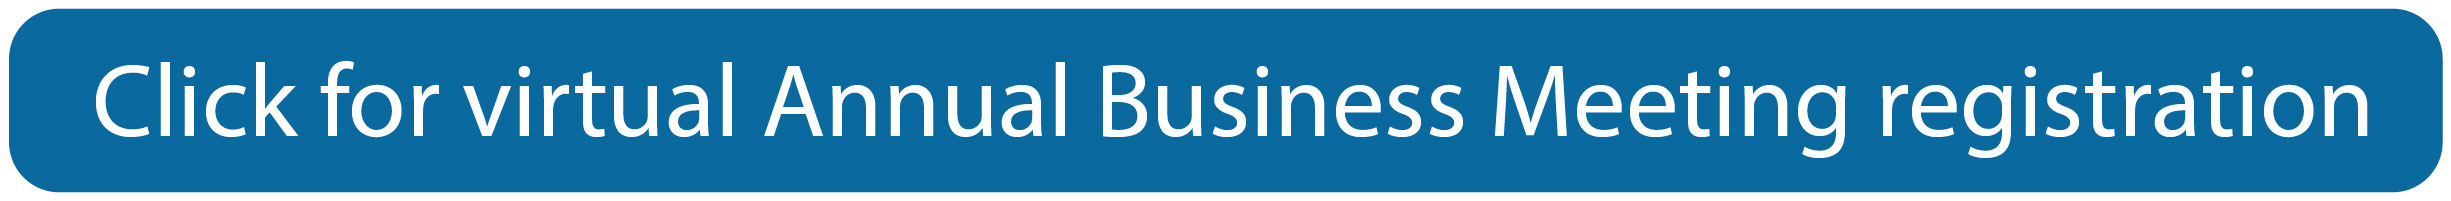 Annual Business Meeting registration